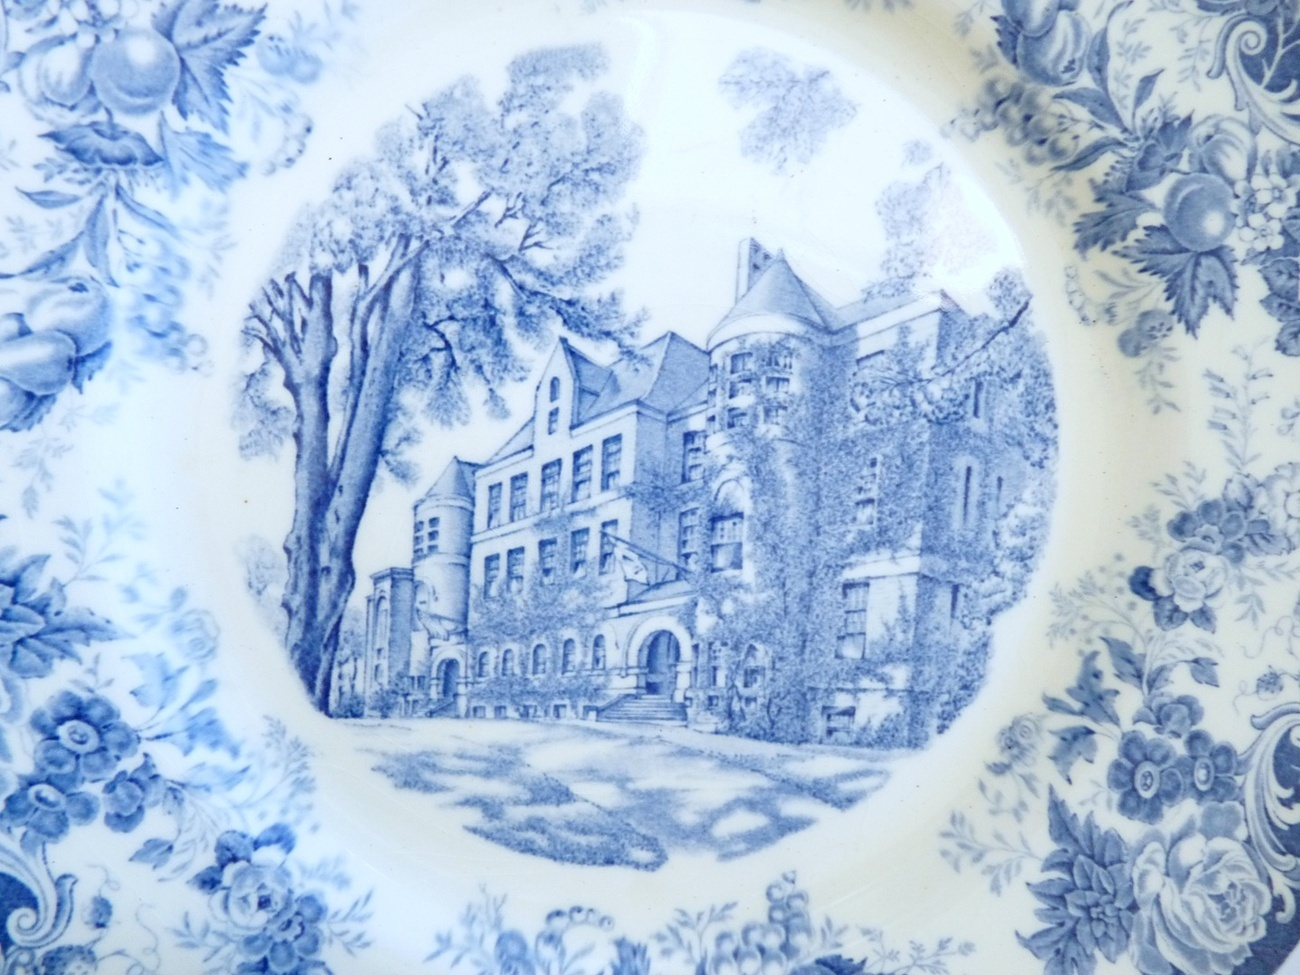 Framingham Normal School plate vintage 1930 May Hall MA college china flo blue